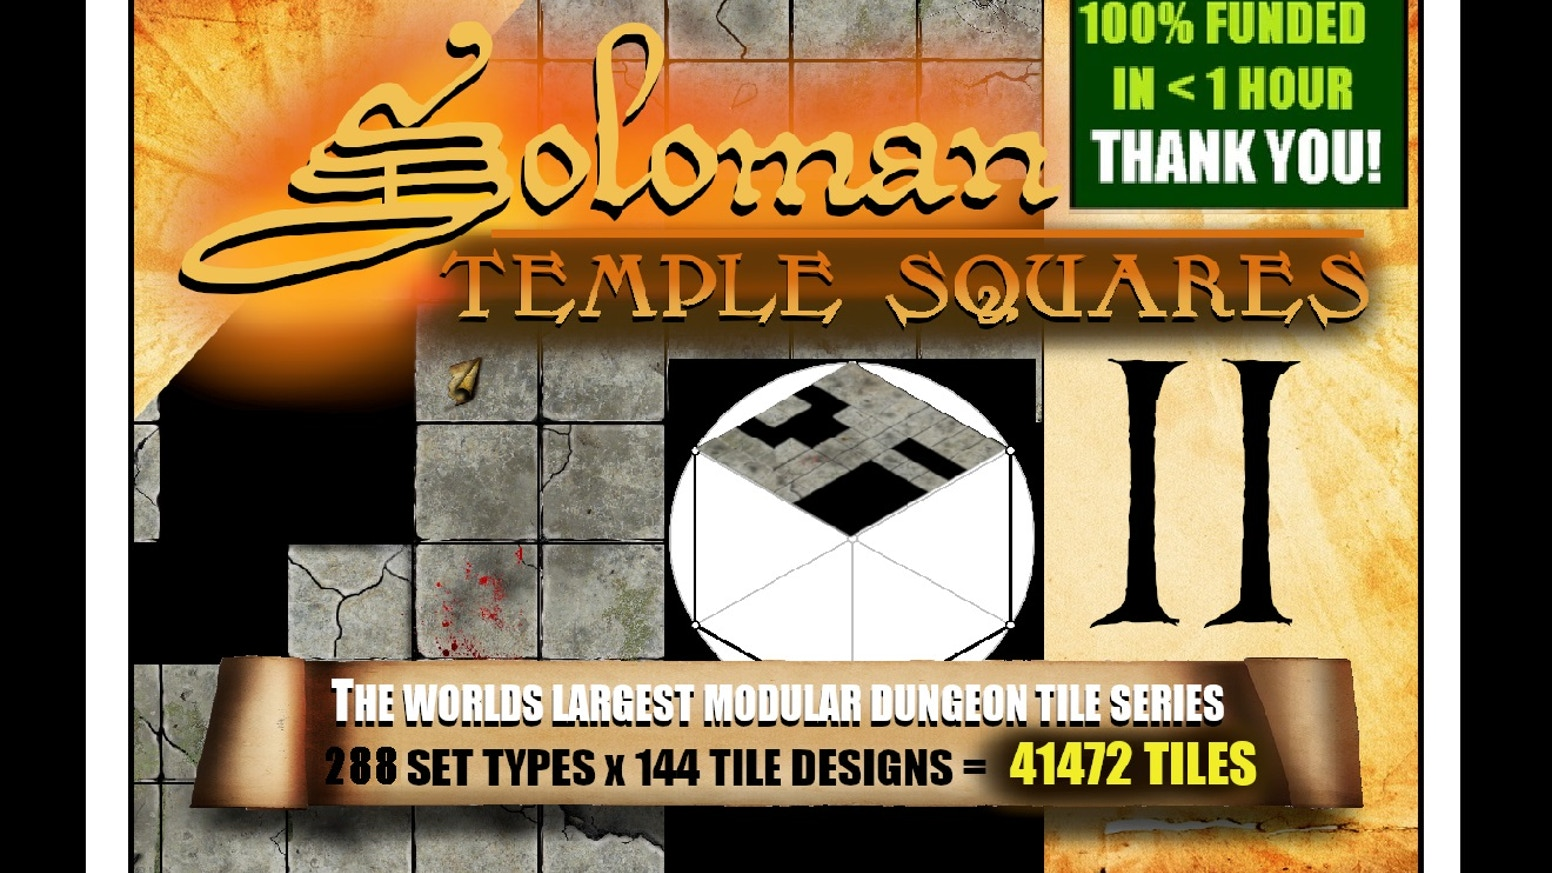 Modular Digital Dungeon Tiles on an Epic Scale. 288 Sets x 144 Tiles to map your Tabletop RPG or VTT adventures.